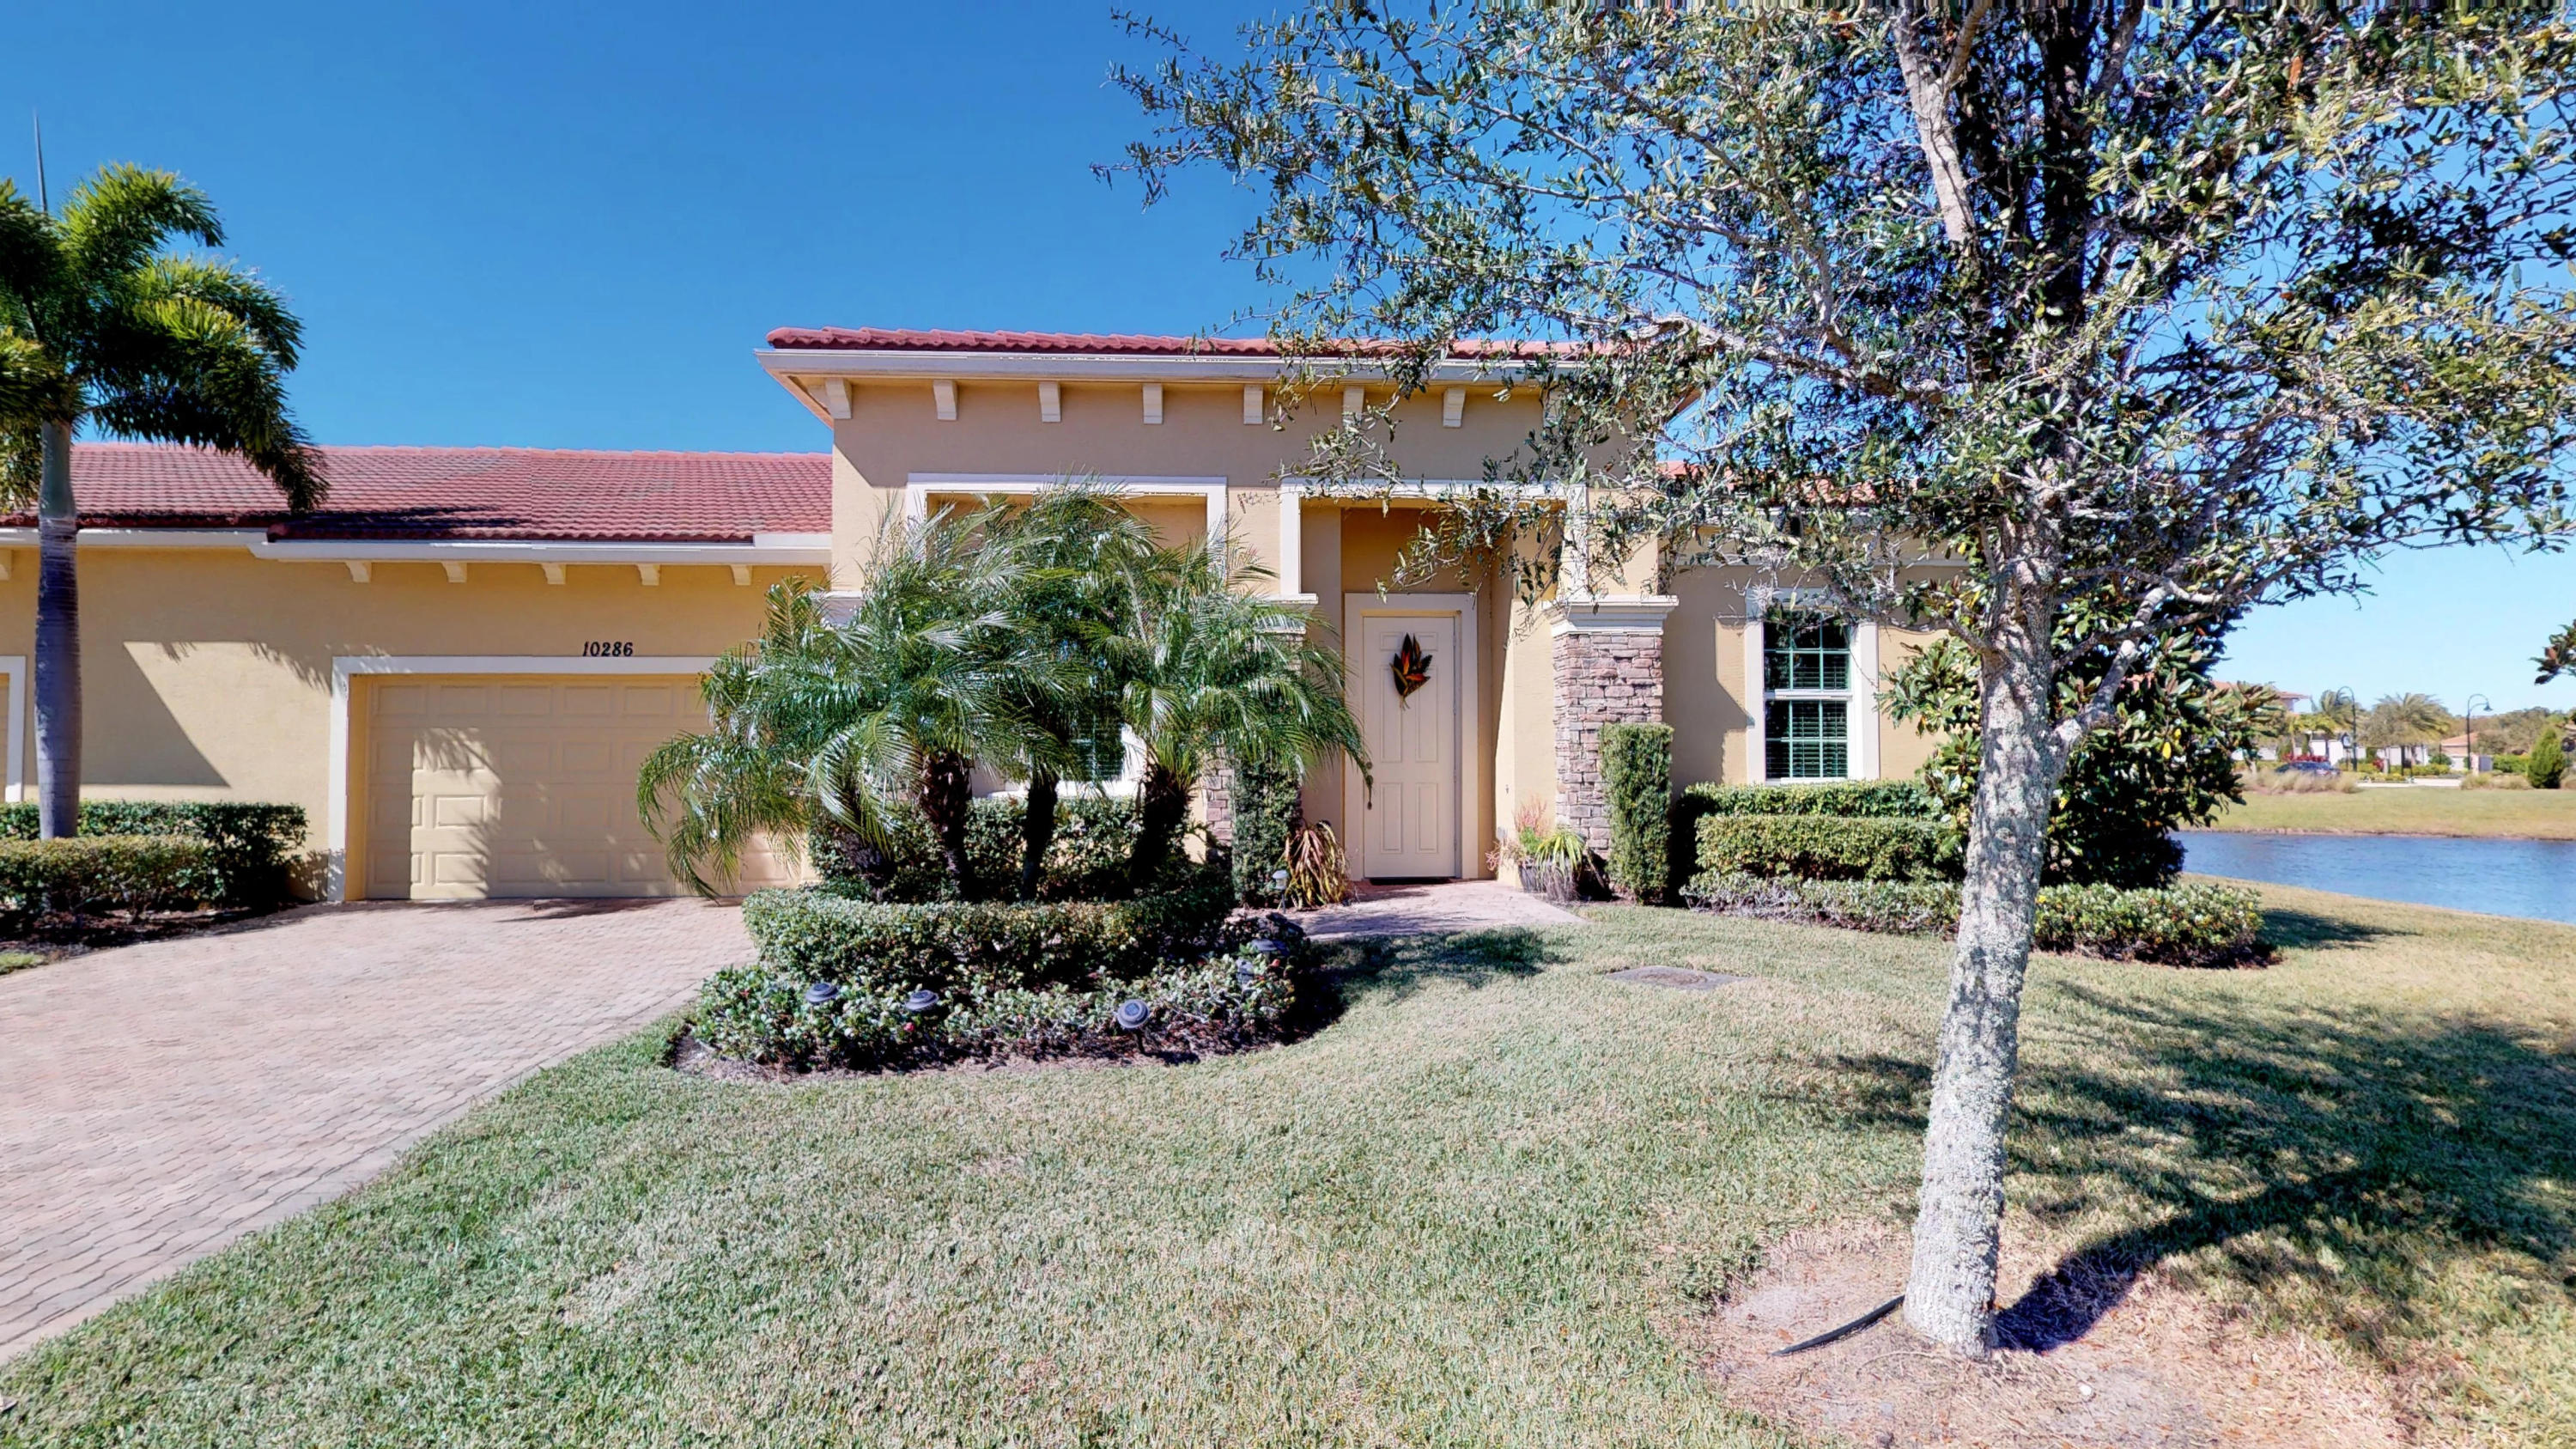 10286 SW Canossa Way, one of homes for sale in Port Saint Lucie